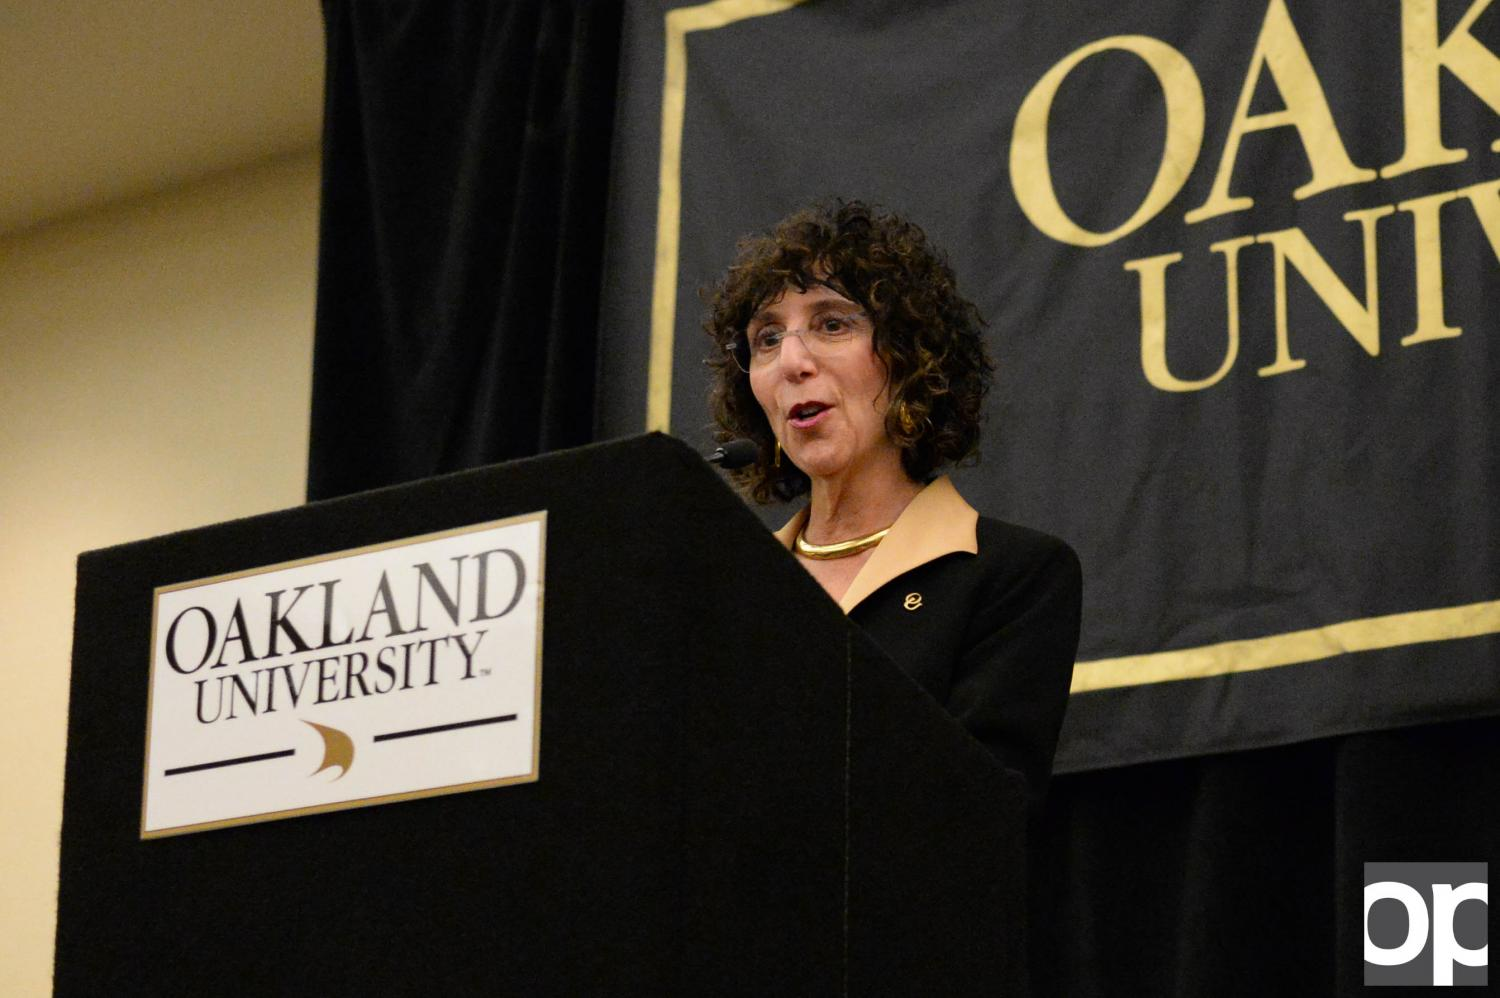 Oakland University chooses doctor as next president